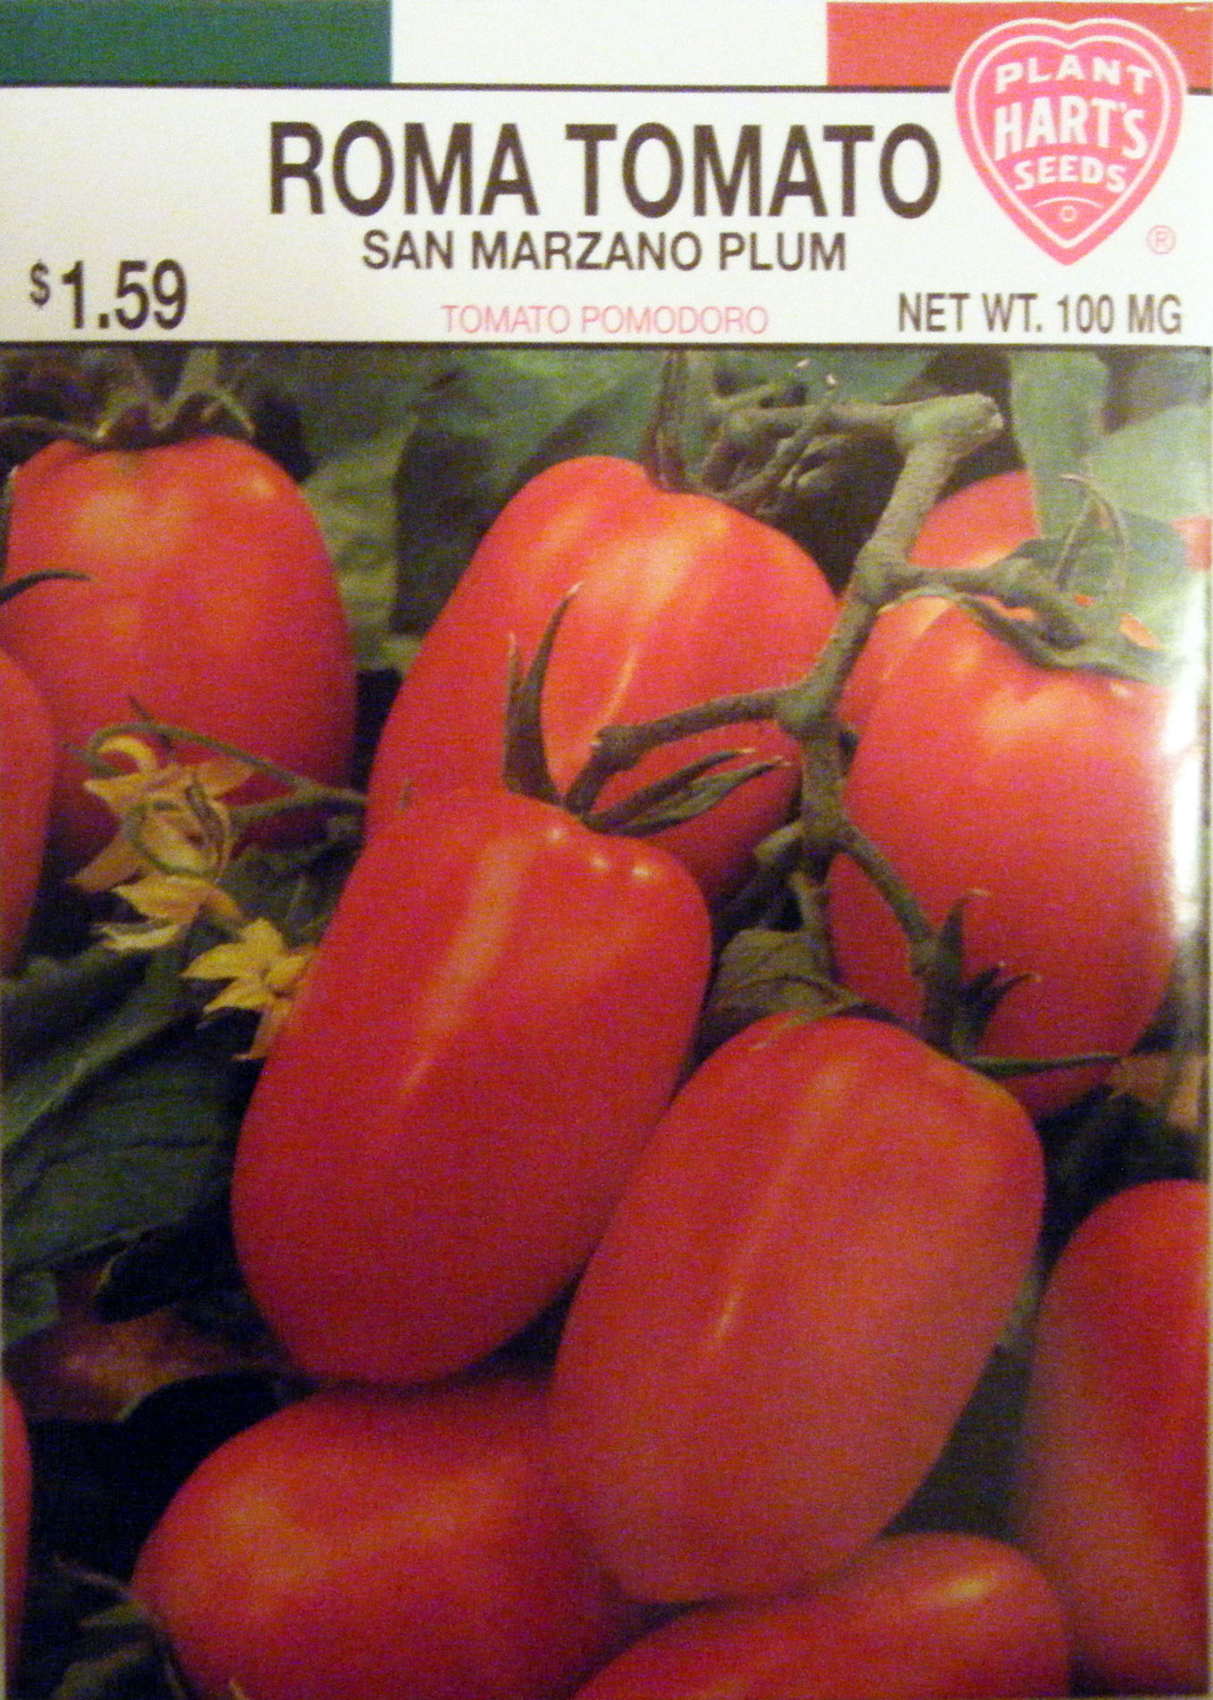 New Variety of Paste Tomato Available